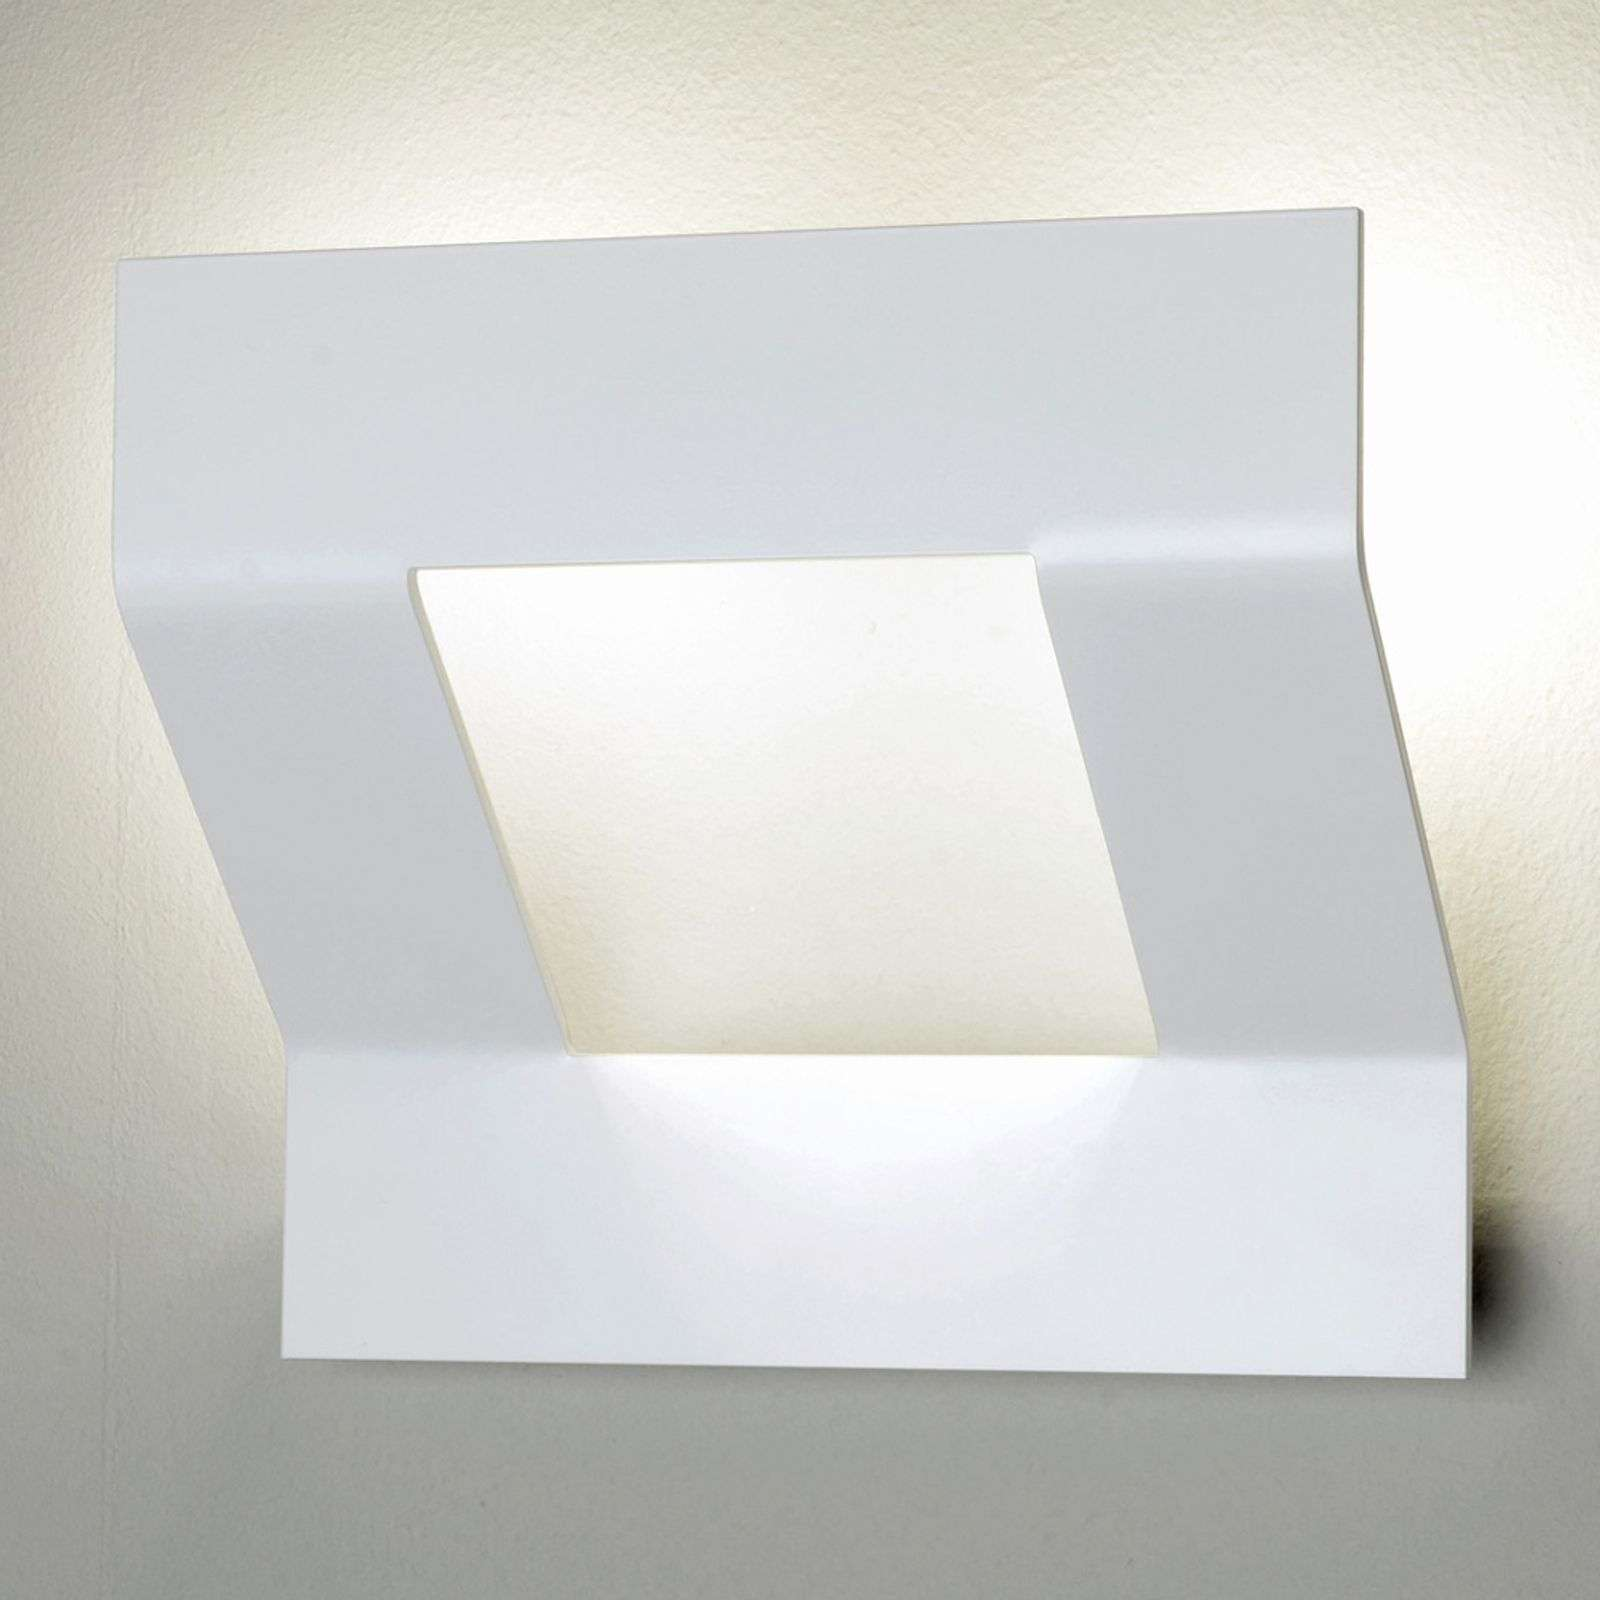 Applique a LED Whizz dal design stupendo